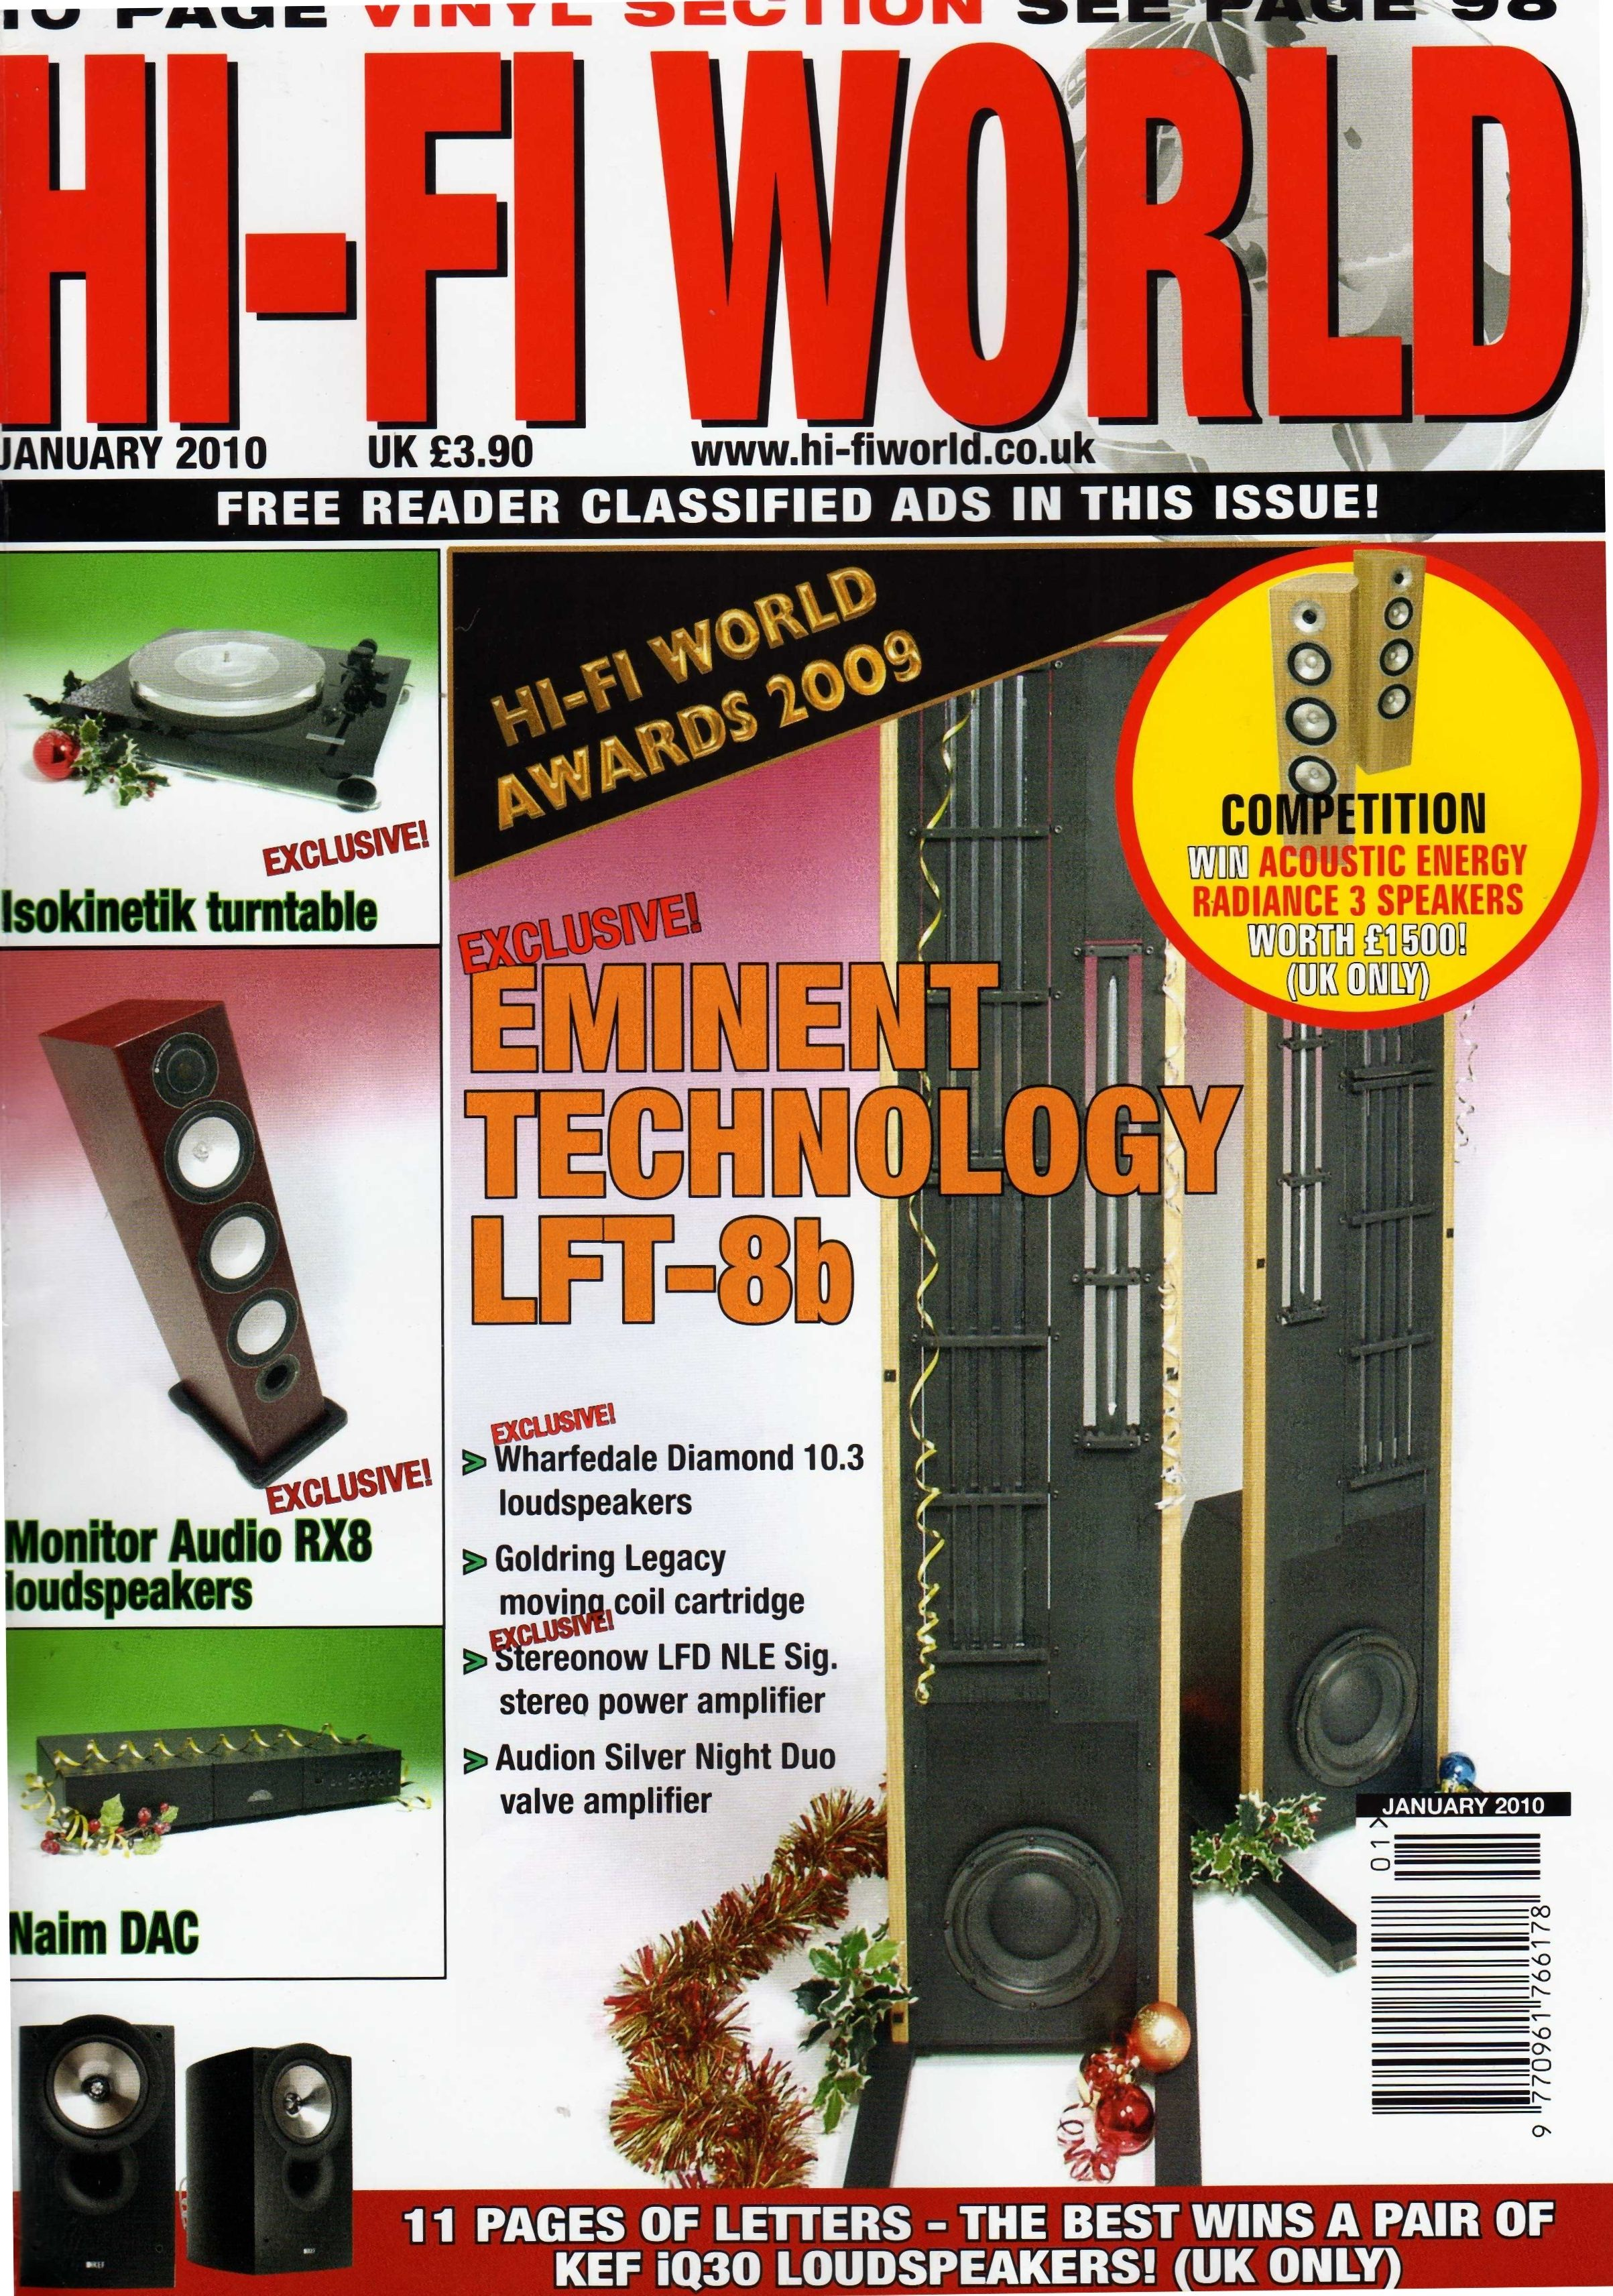 The LFT-8b makes the cover of Hi-Fi World Magazine and